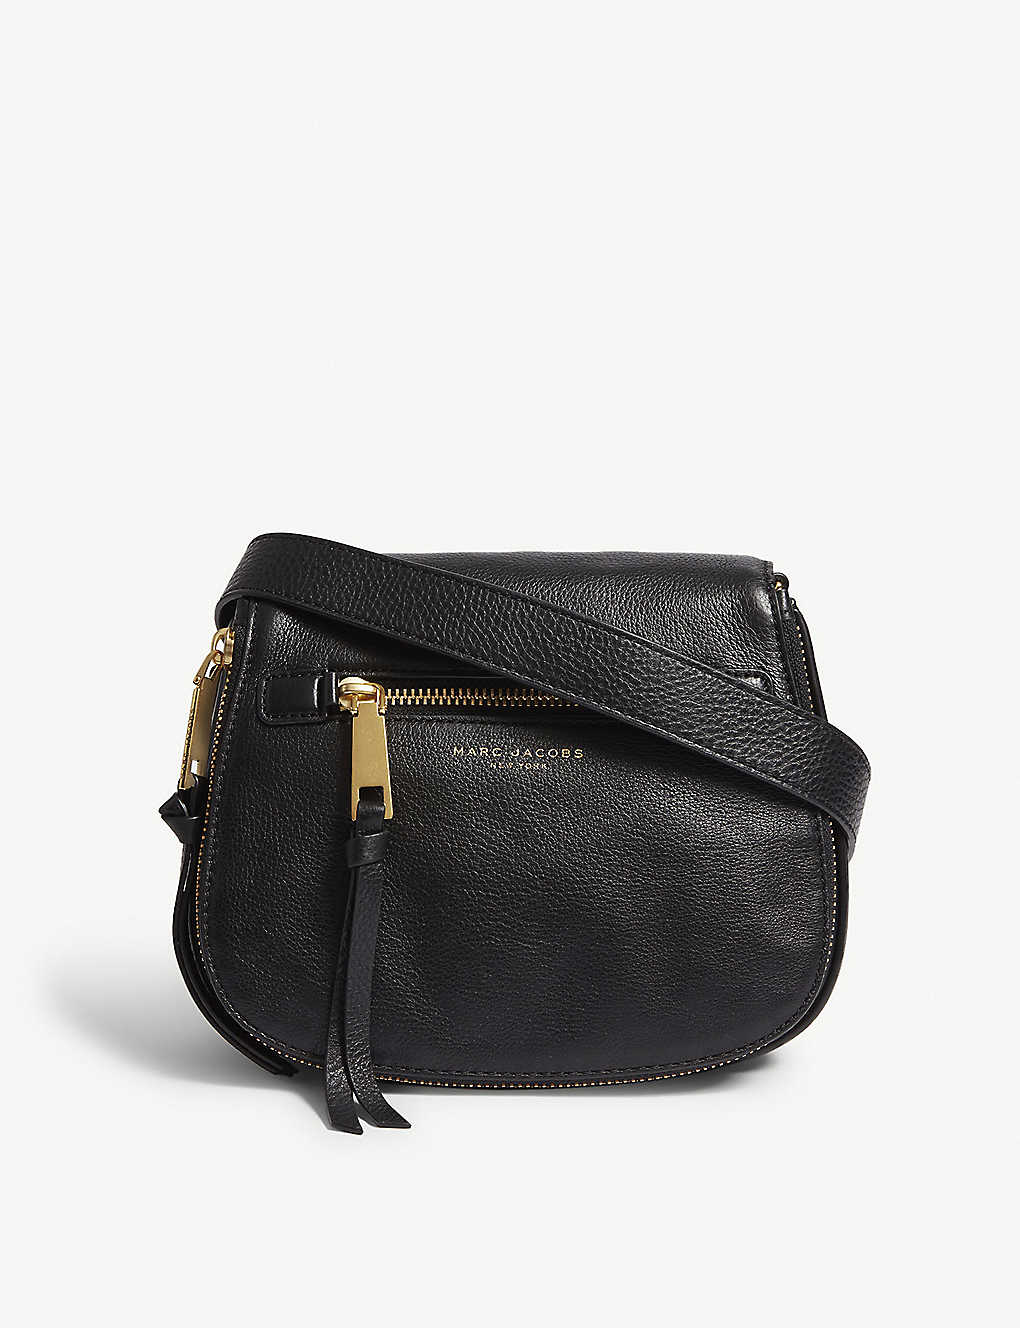 ffc9c7d038 MARC JACOBS - Recruit small grained leather saddle bag